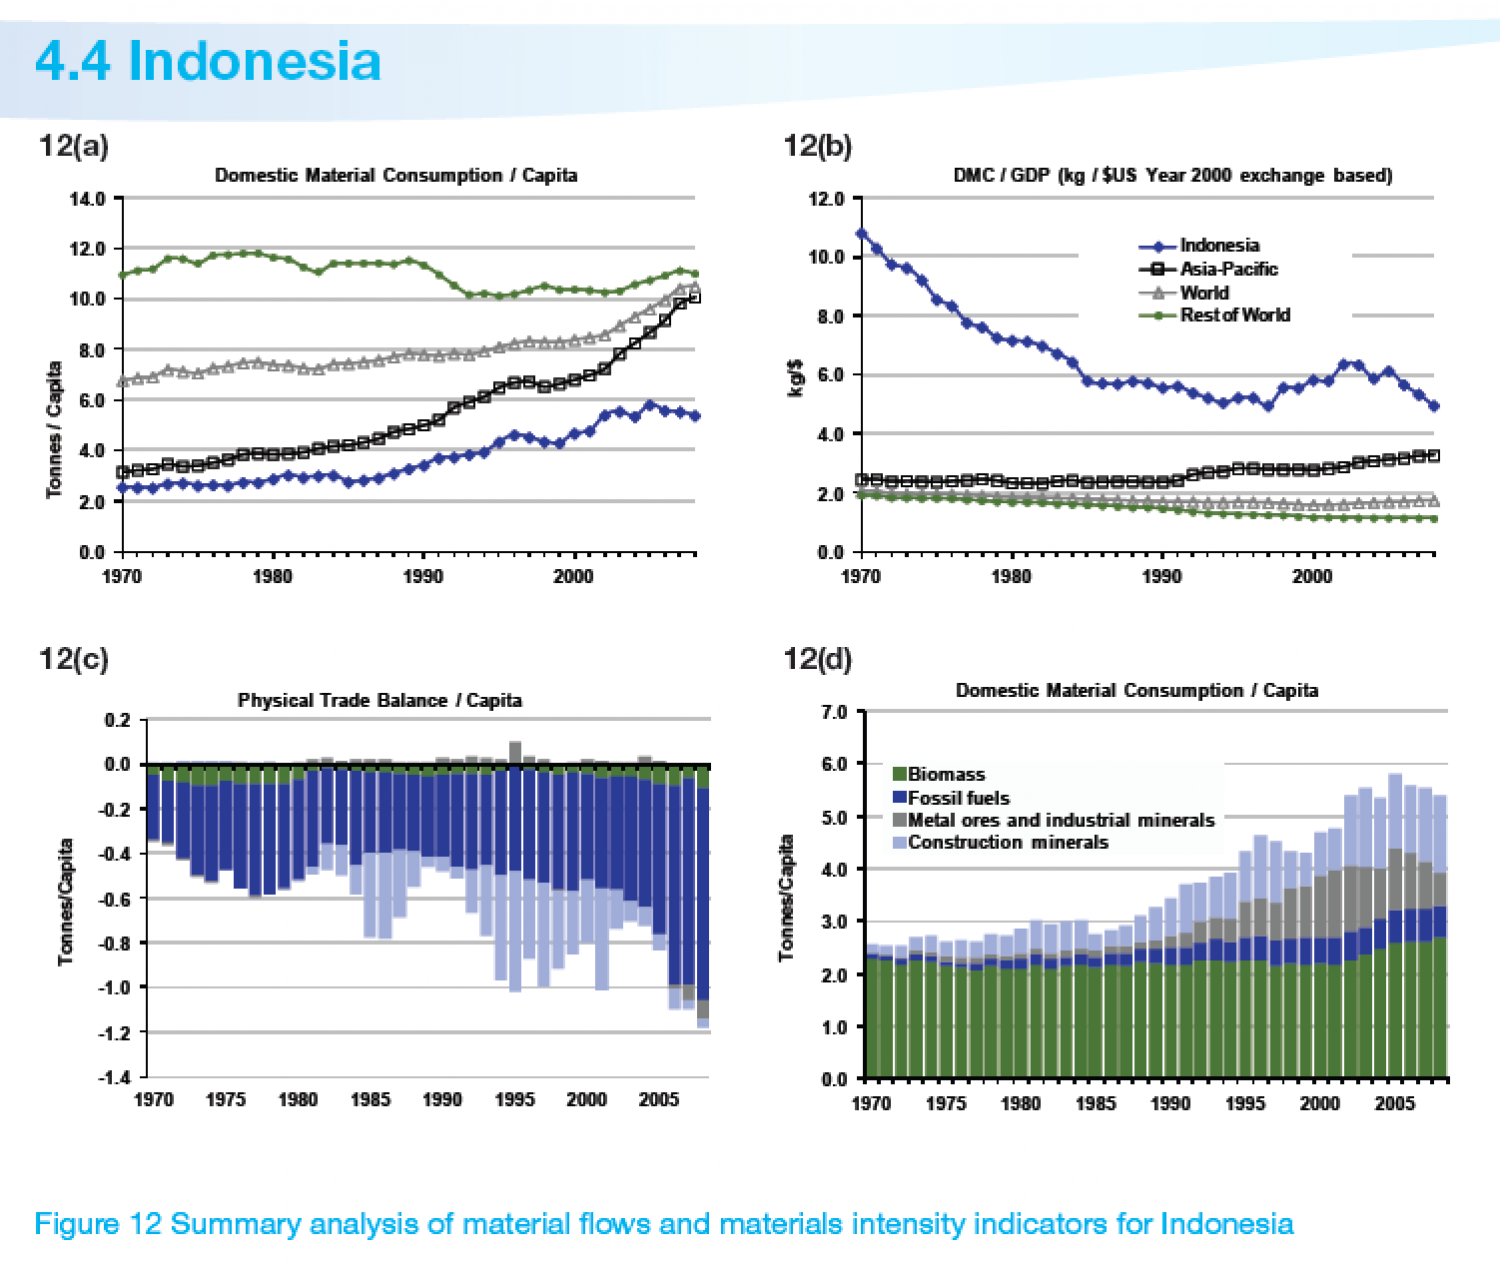 INDONESIA : Summary analysis of material flows and materials intensity indicators Infographic